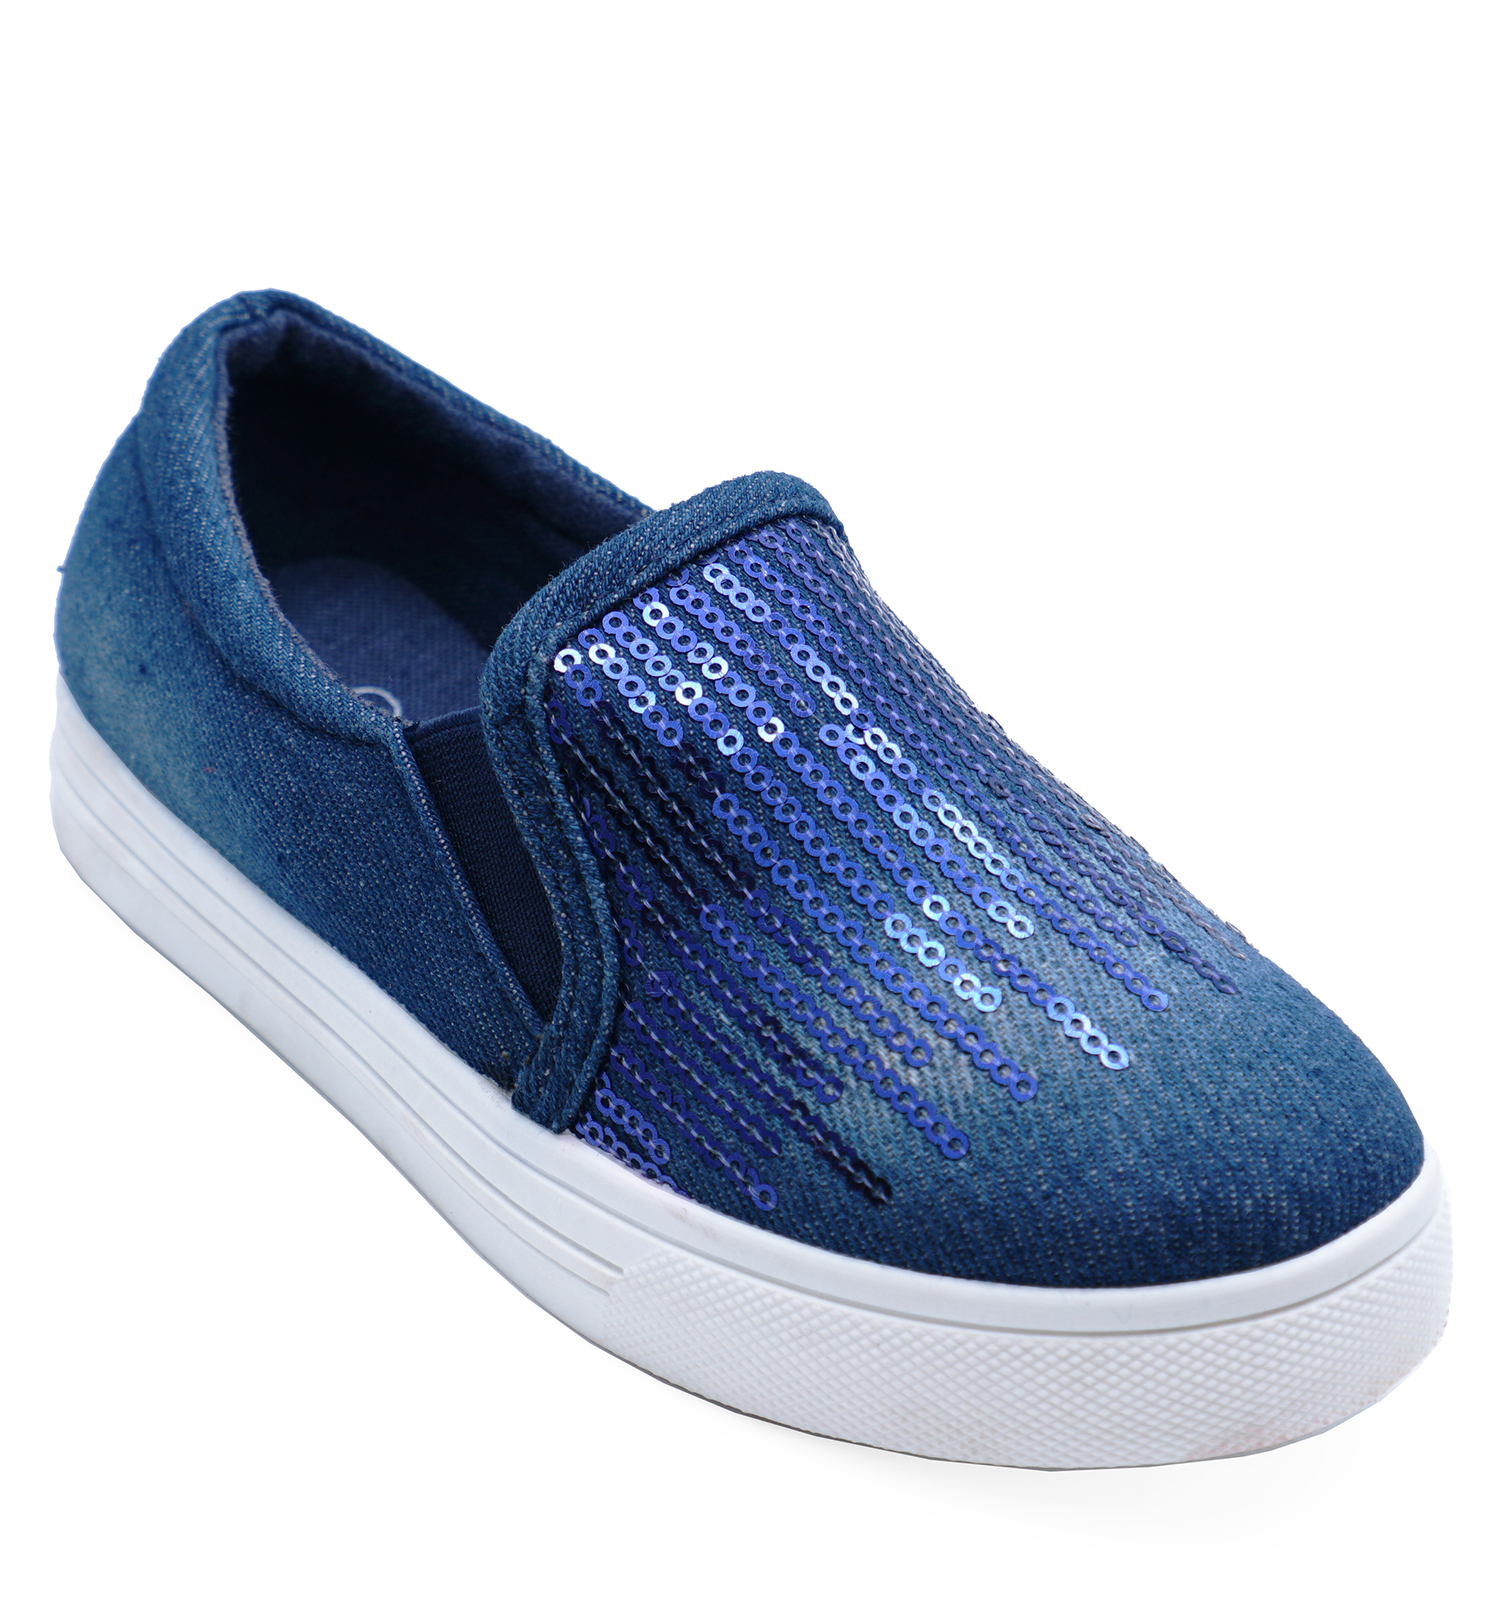 CHILDRENS-KIDS-GIRLS-DENIM-SLIP-ON-CASUAL-SHOES-TRAINERS-DANCE-PUMPS-SIZES-8-1 thumbnail 6